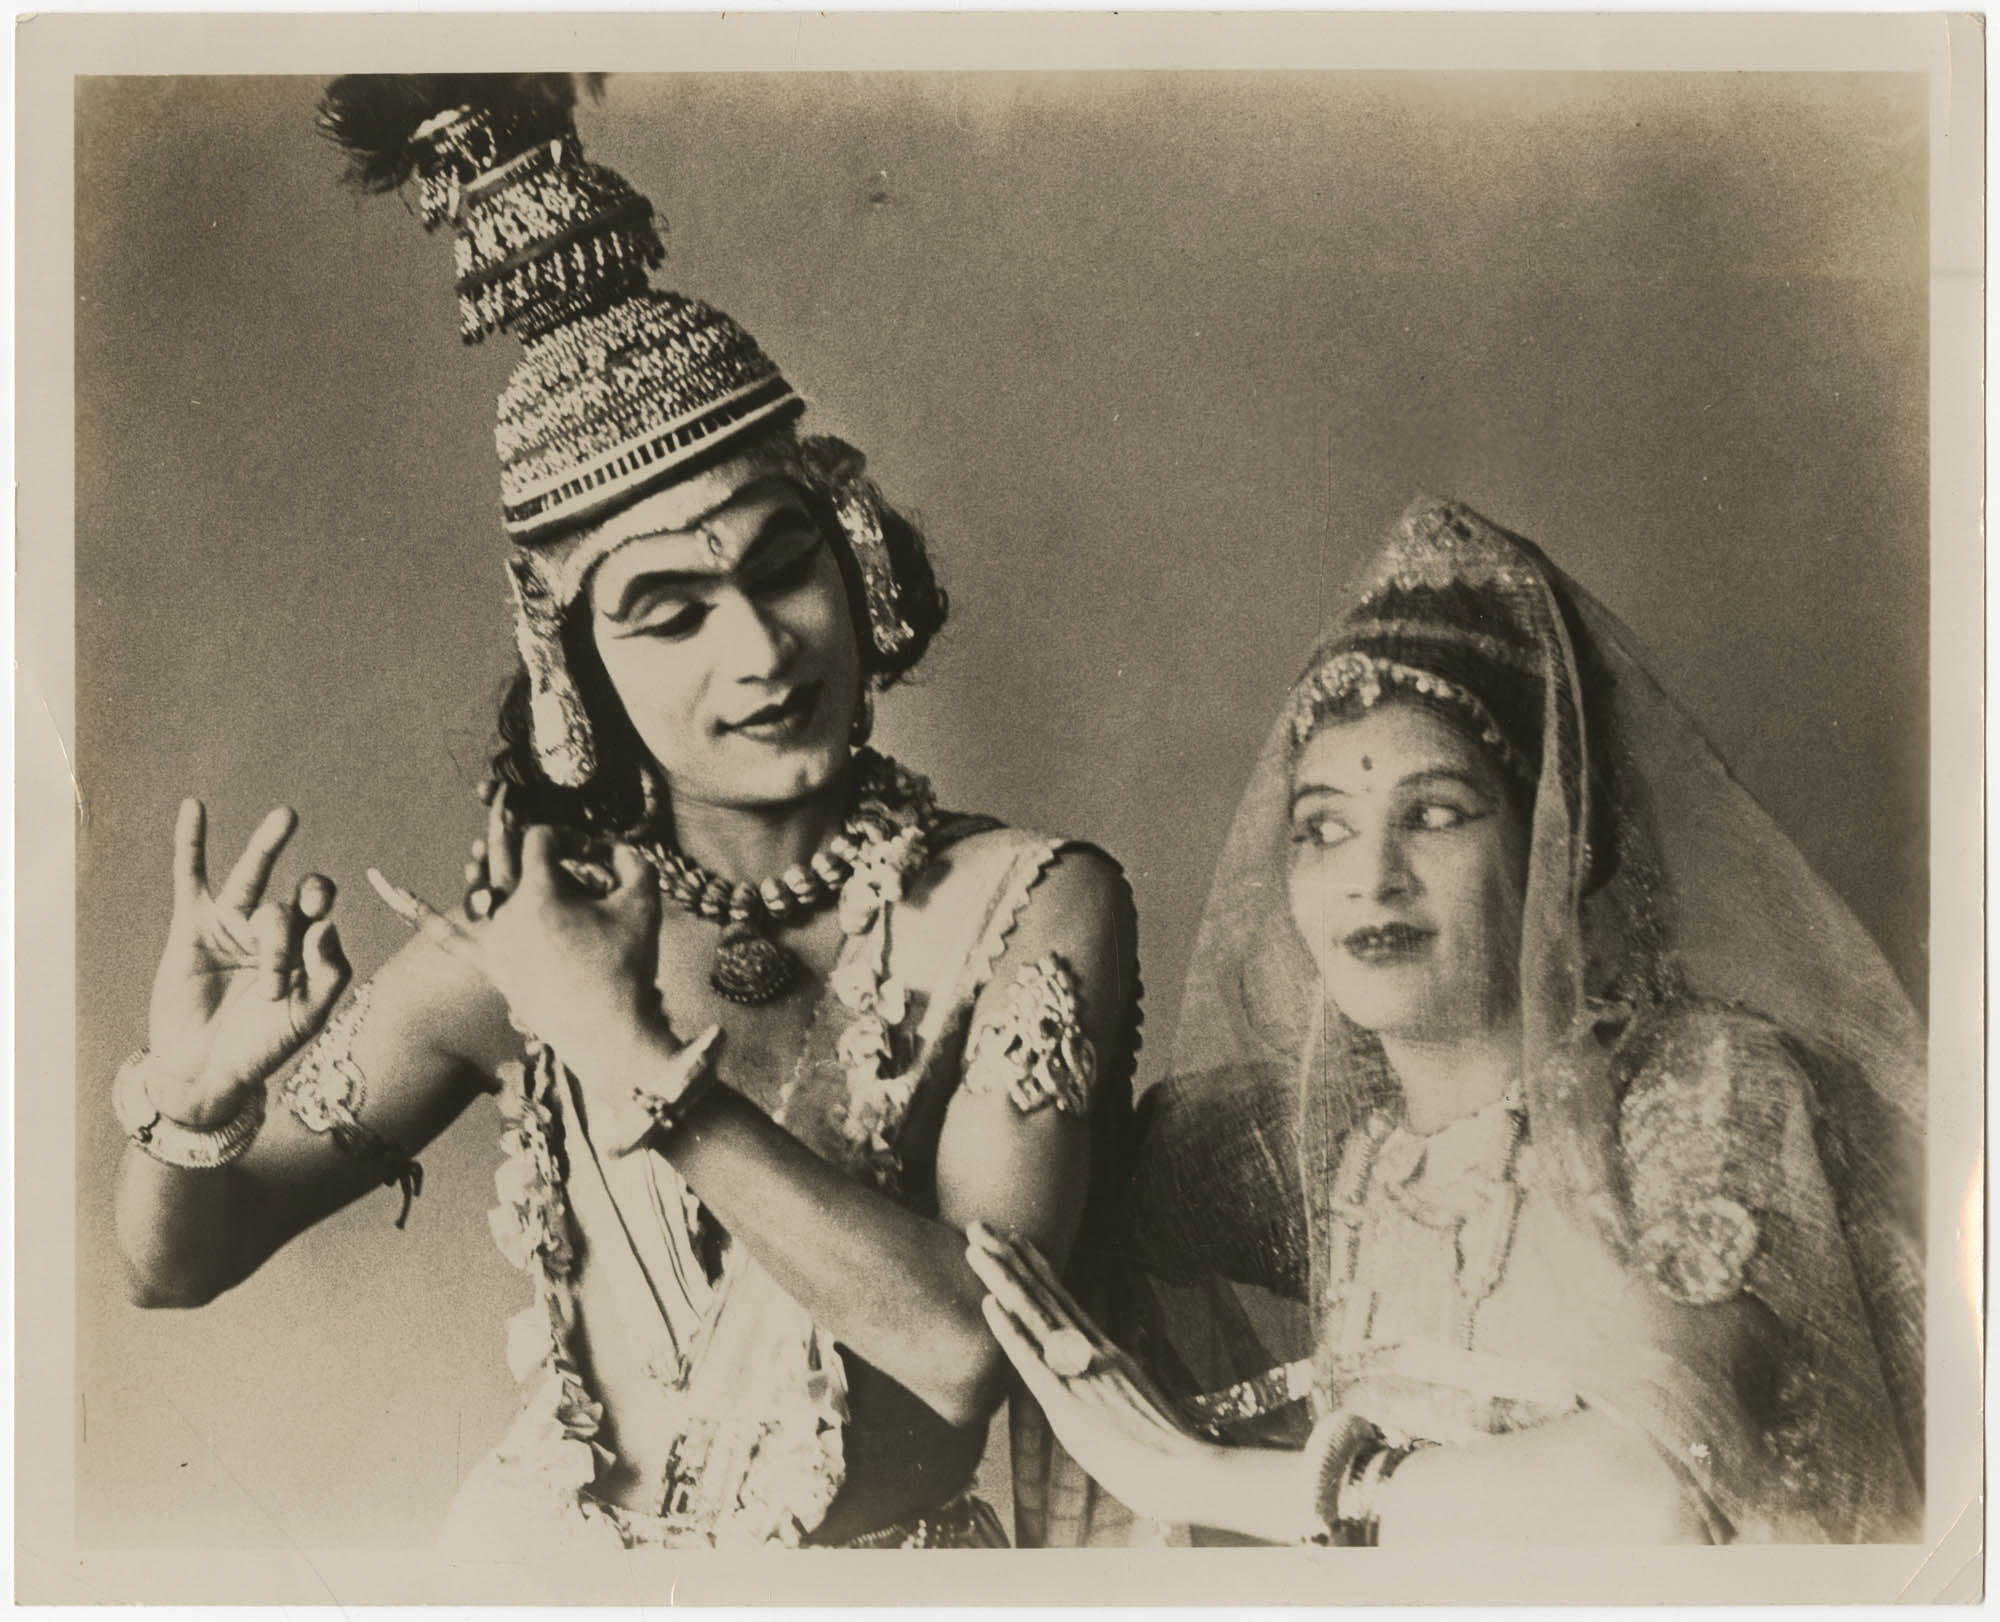 Photograph of Two People Dancing